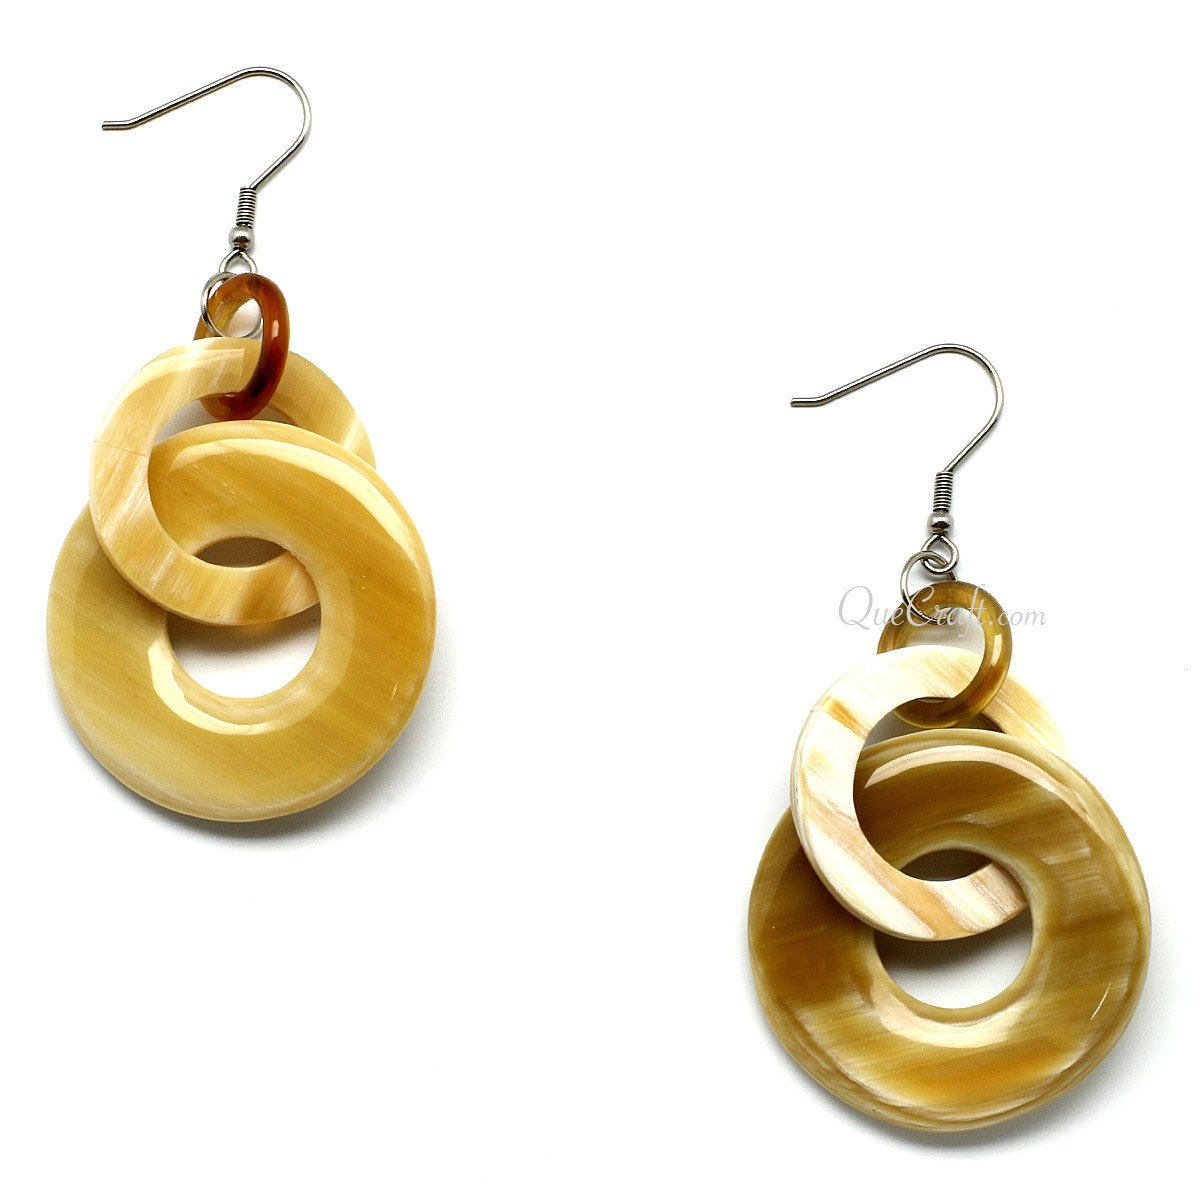 Horn Earrings #9787 - HORN.JEWELRY by QueCraft